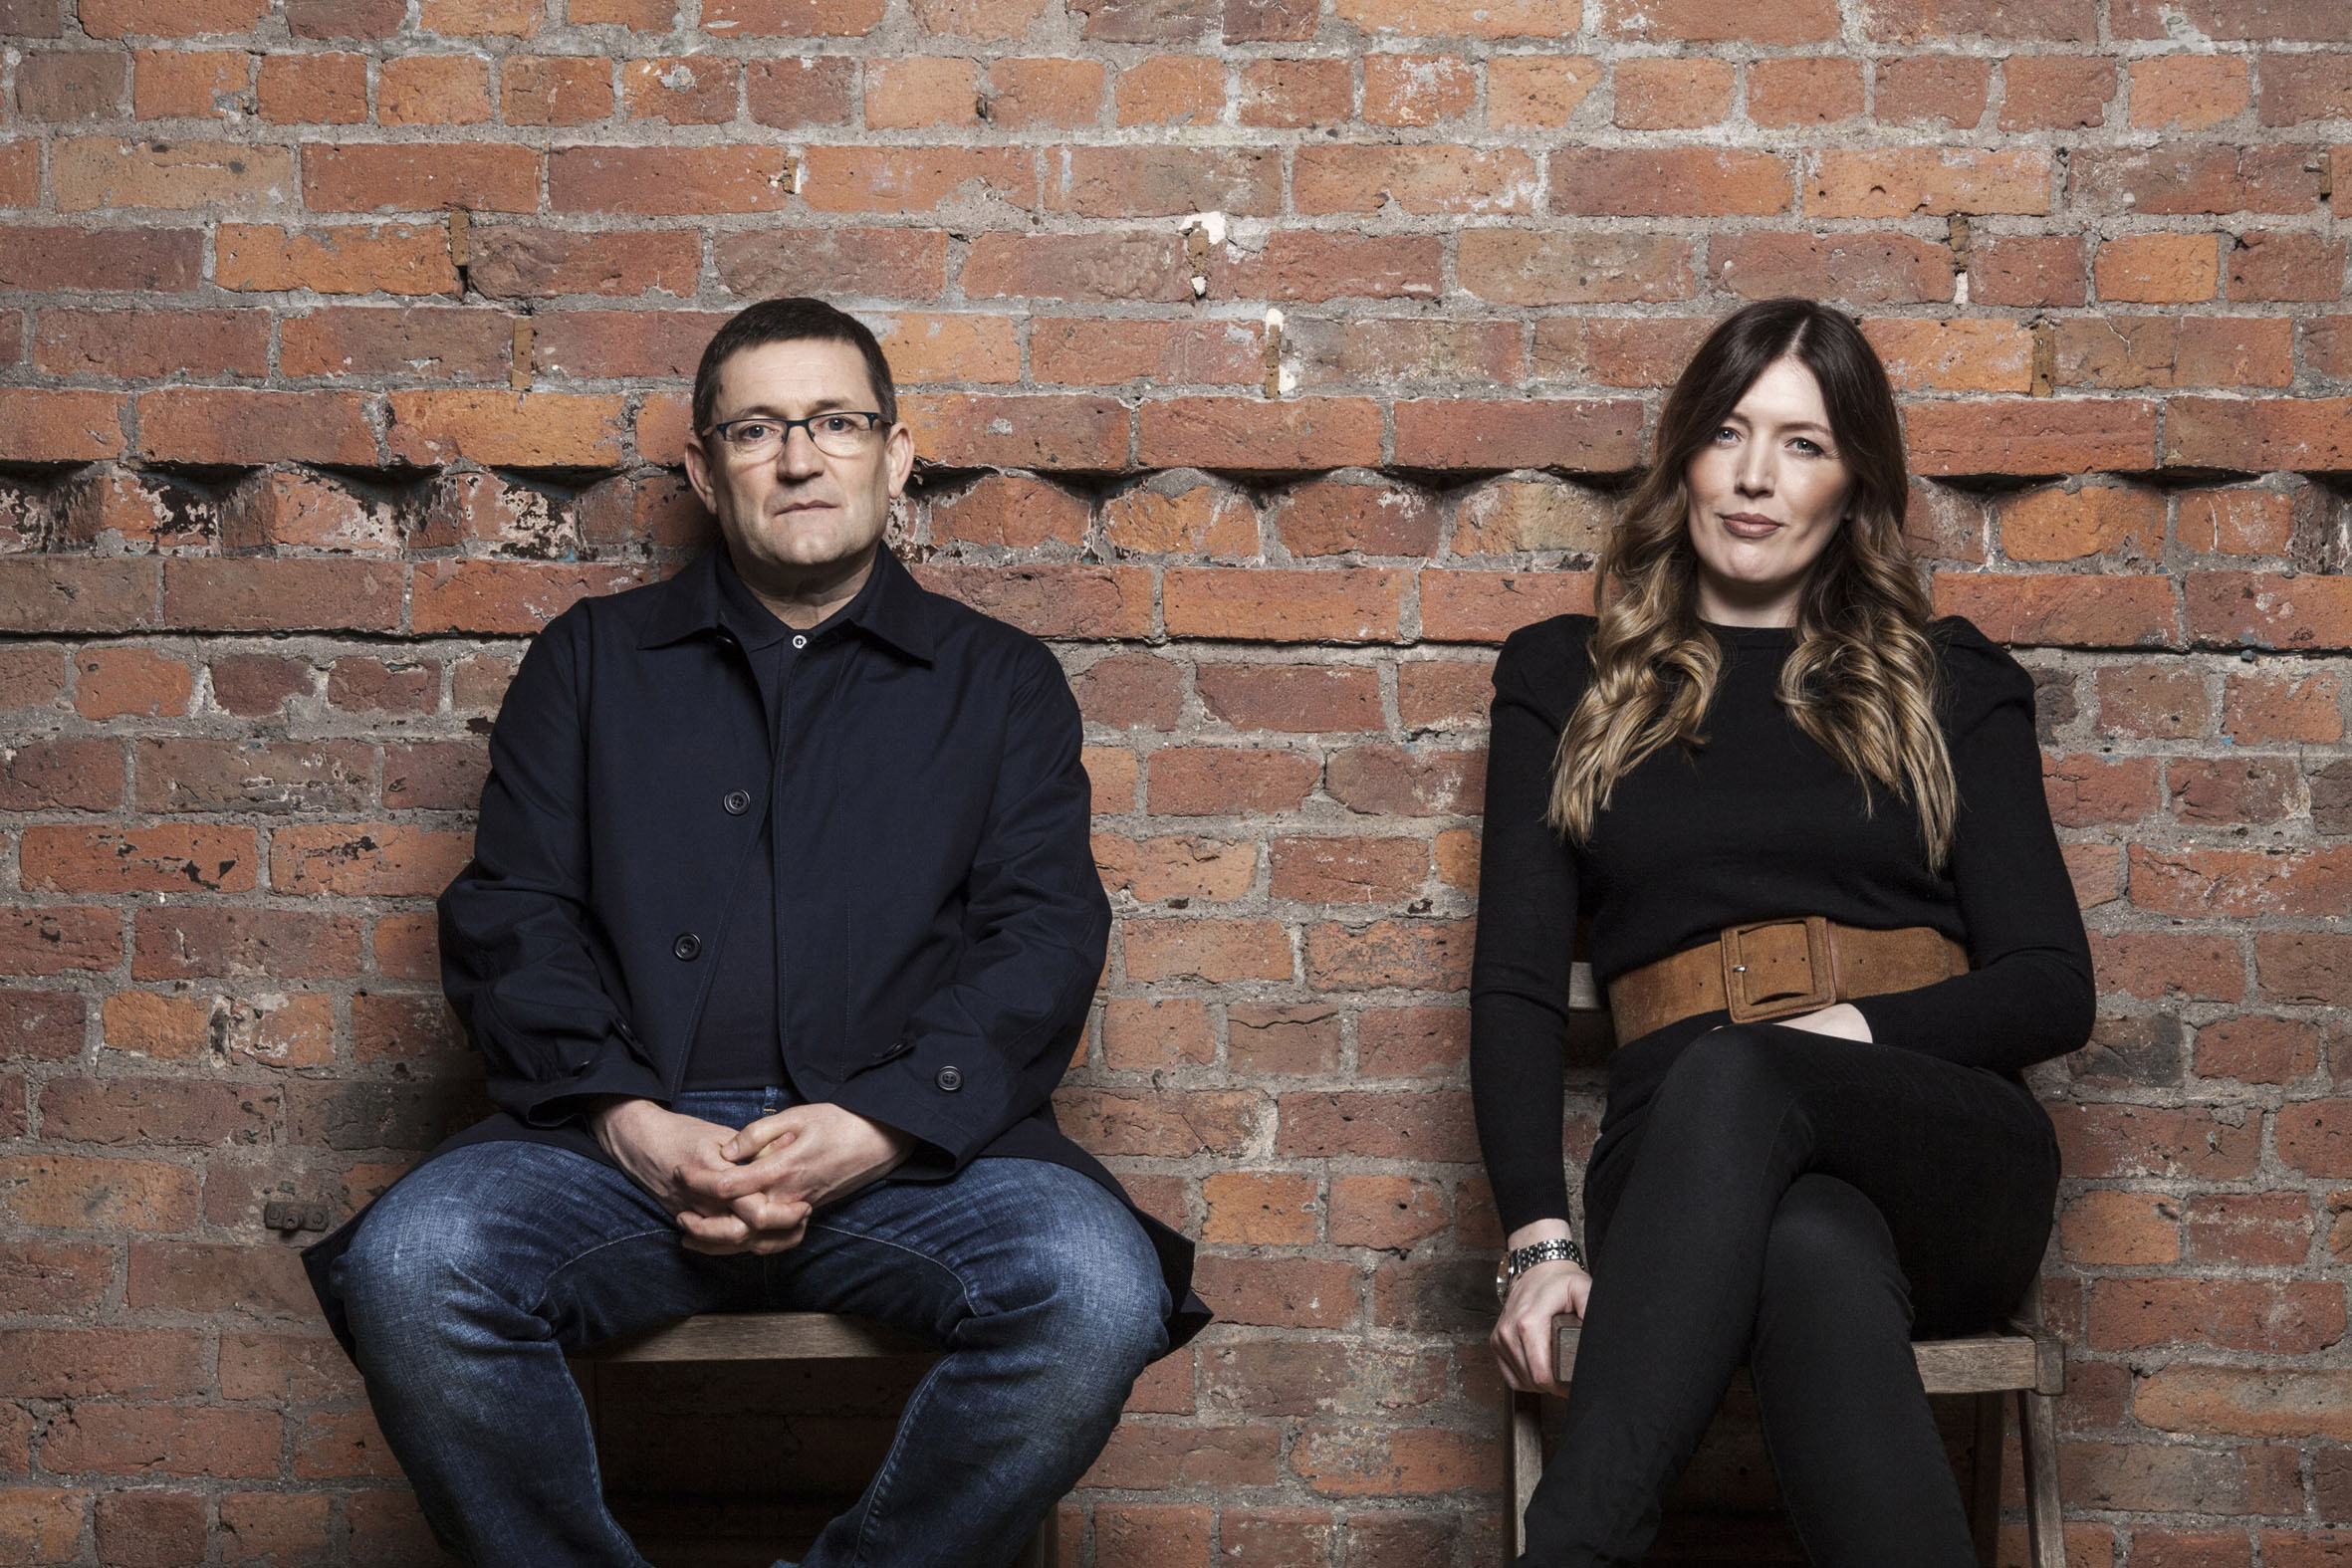 DUO: Paul Heaton and Jacqui Abbott